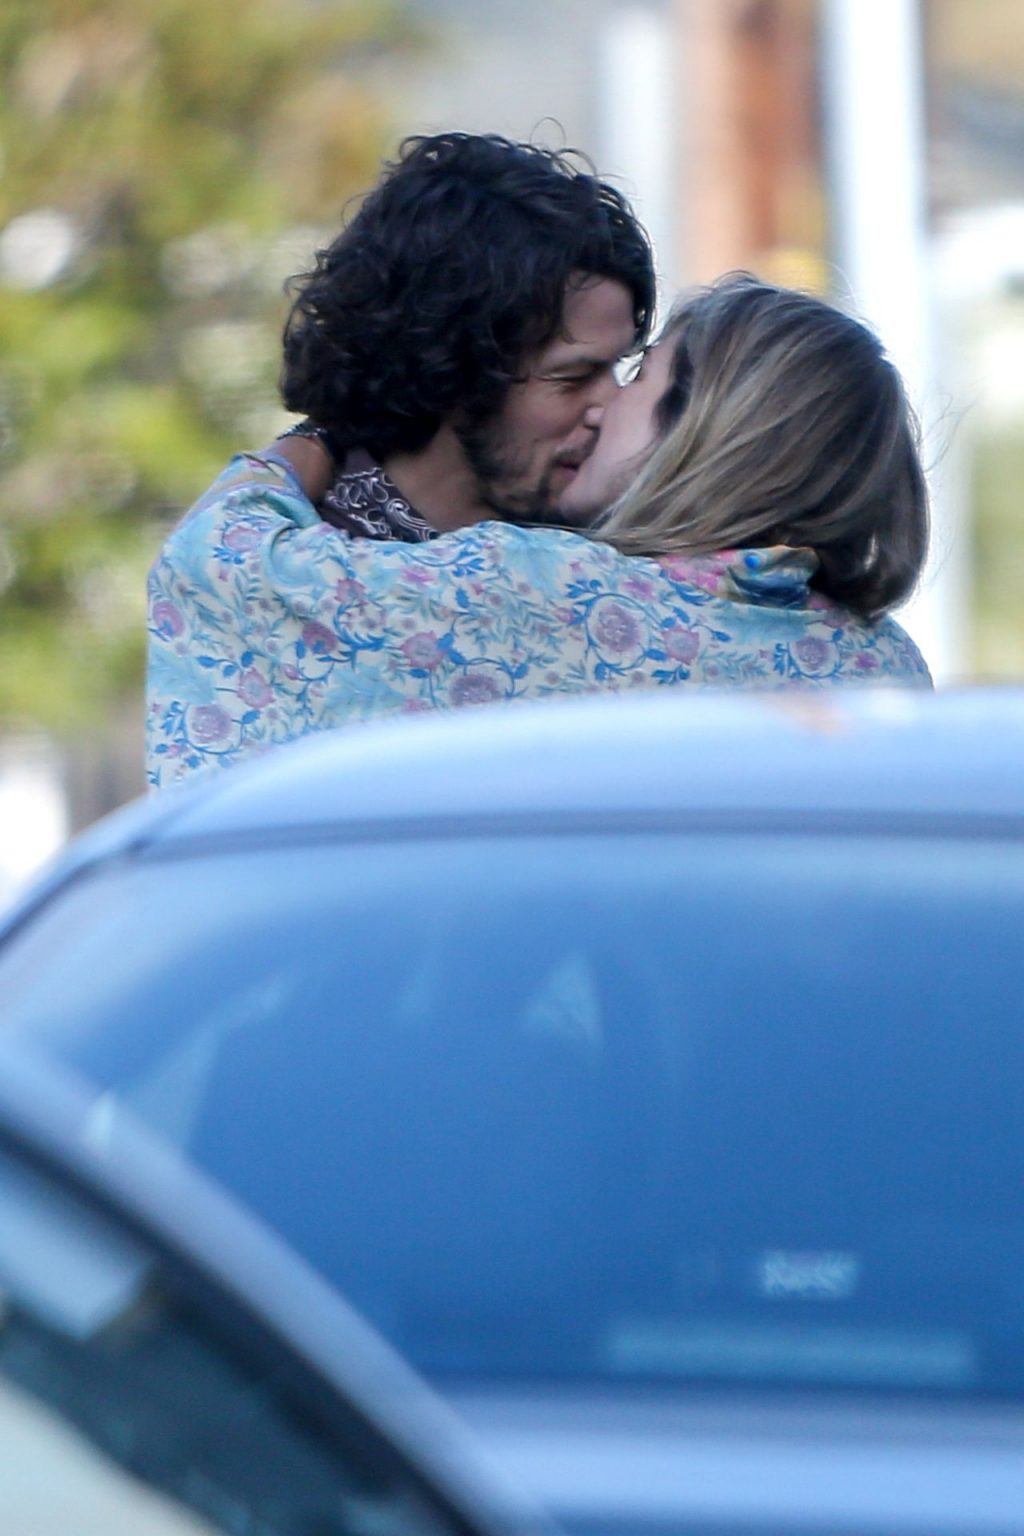 Ashley Hart Packs on the PDA and Shares a Kiss with a Mystery Man (27 Photos)